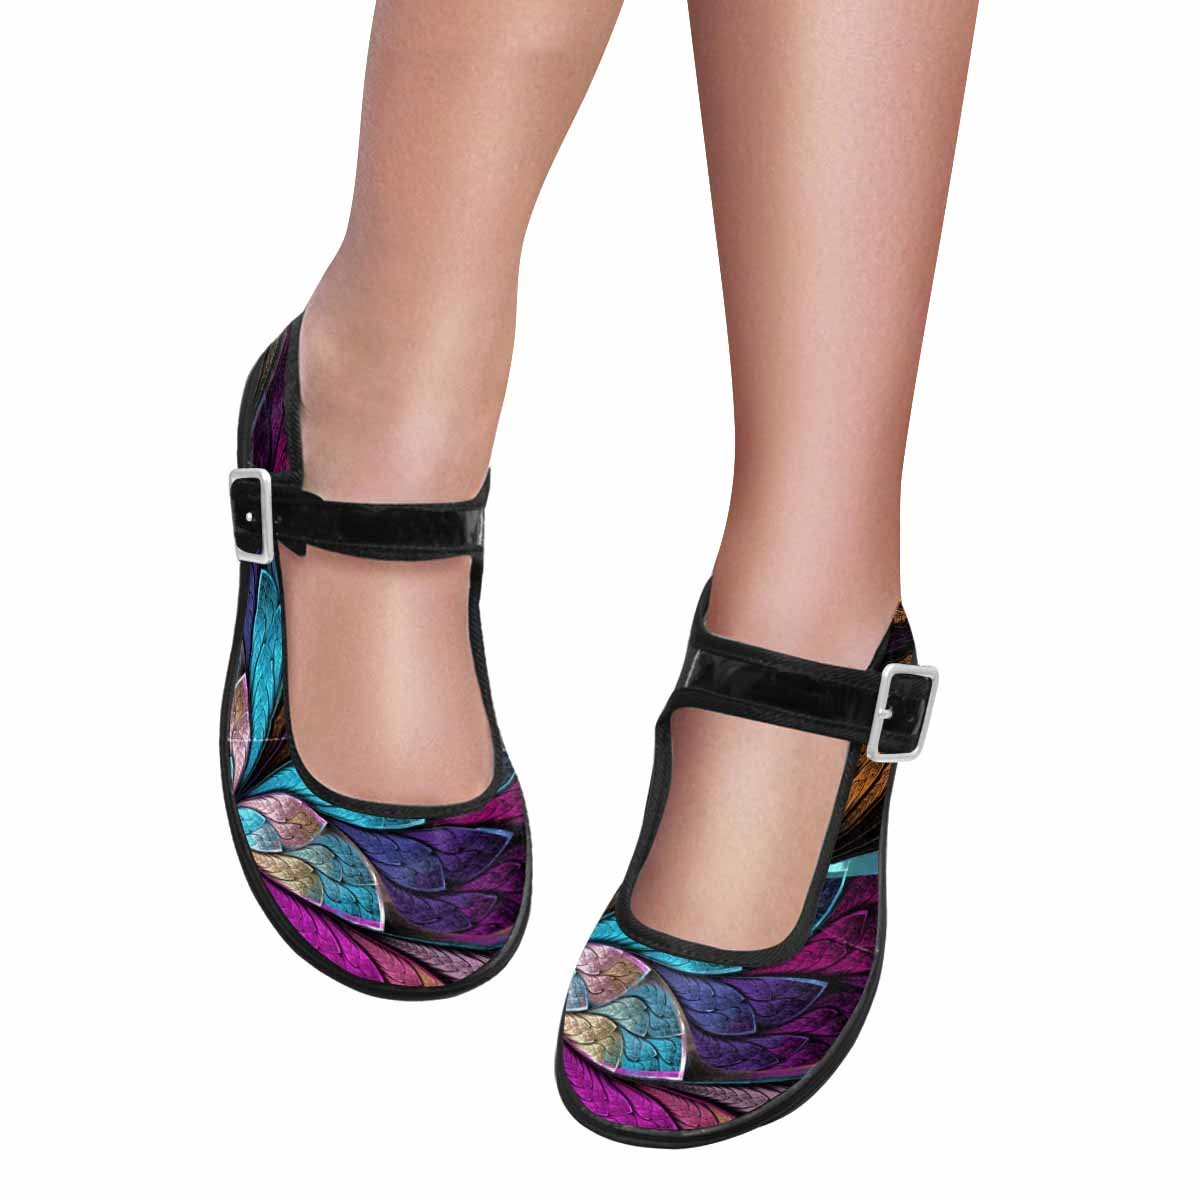 InterestPrint Women's Comfort Mary Jane Flats Casual Walking Shoes Beautiful Fractal Flower Butterfly in Stained Glass Window Style 6 B(M) US